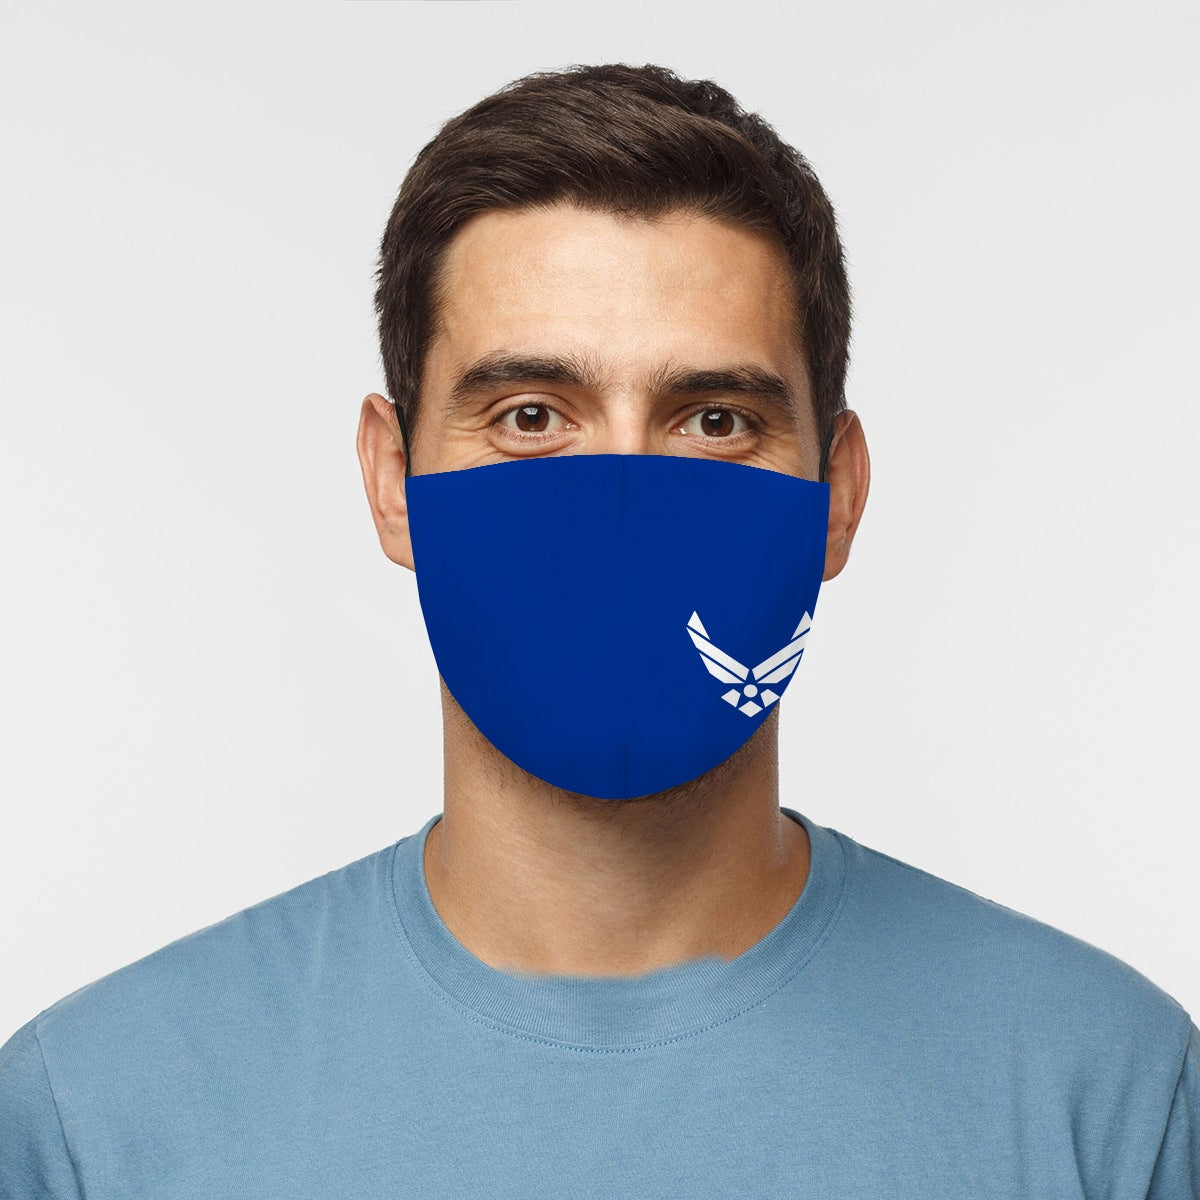 United States Air Force #2 Blue Cloth Face Mask